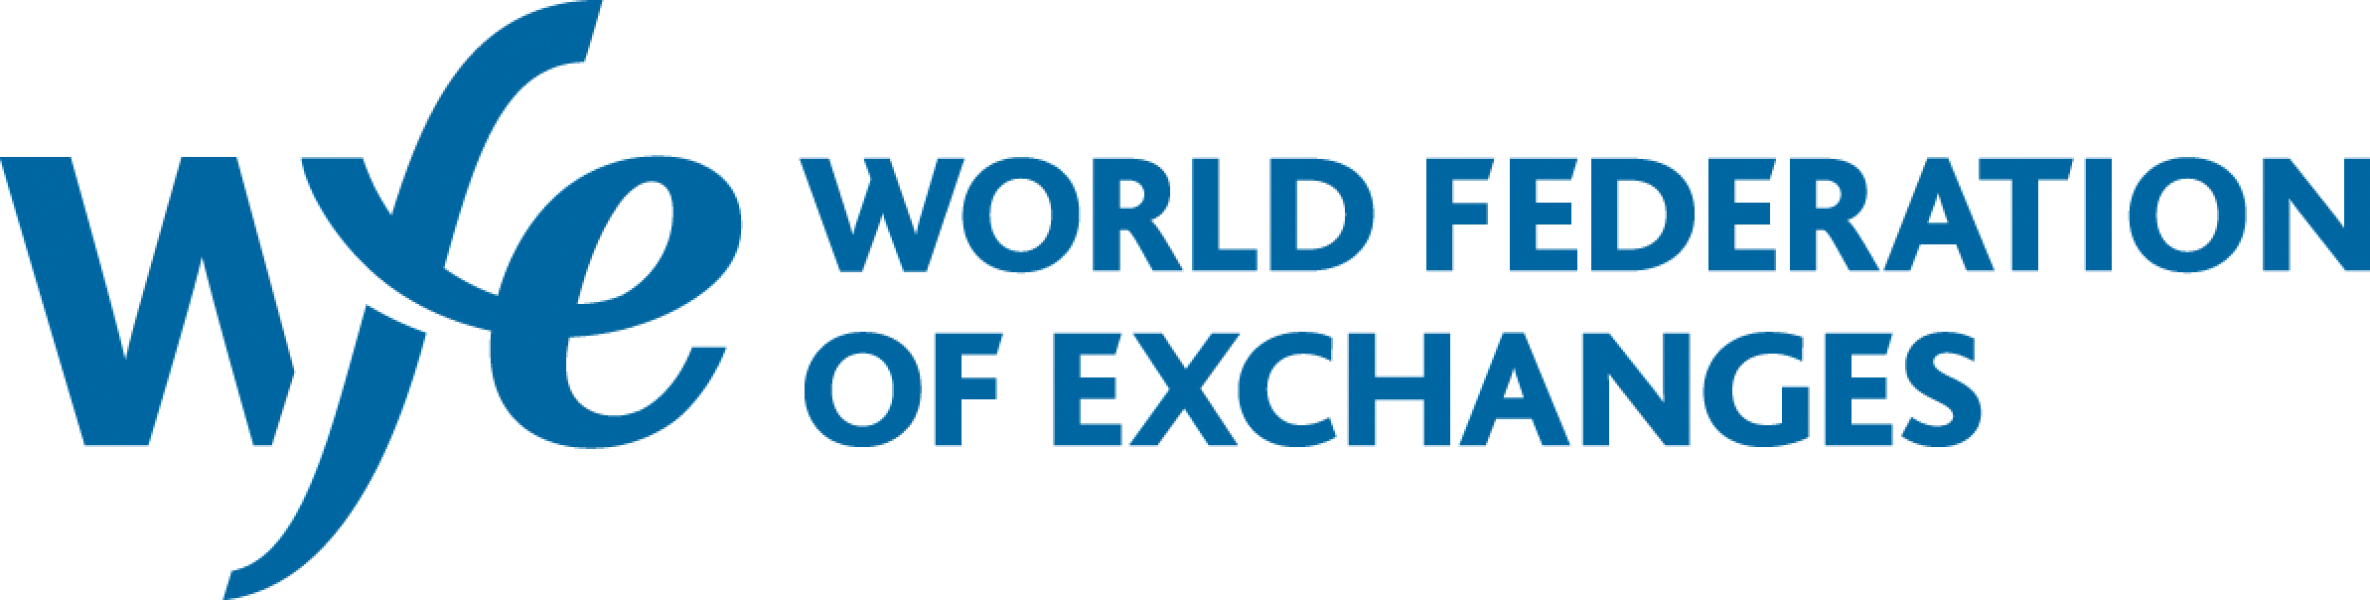 World-Federation-of-Exchanges-General-Assembly-Ele